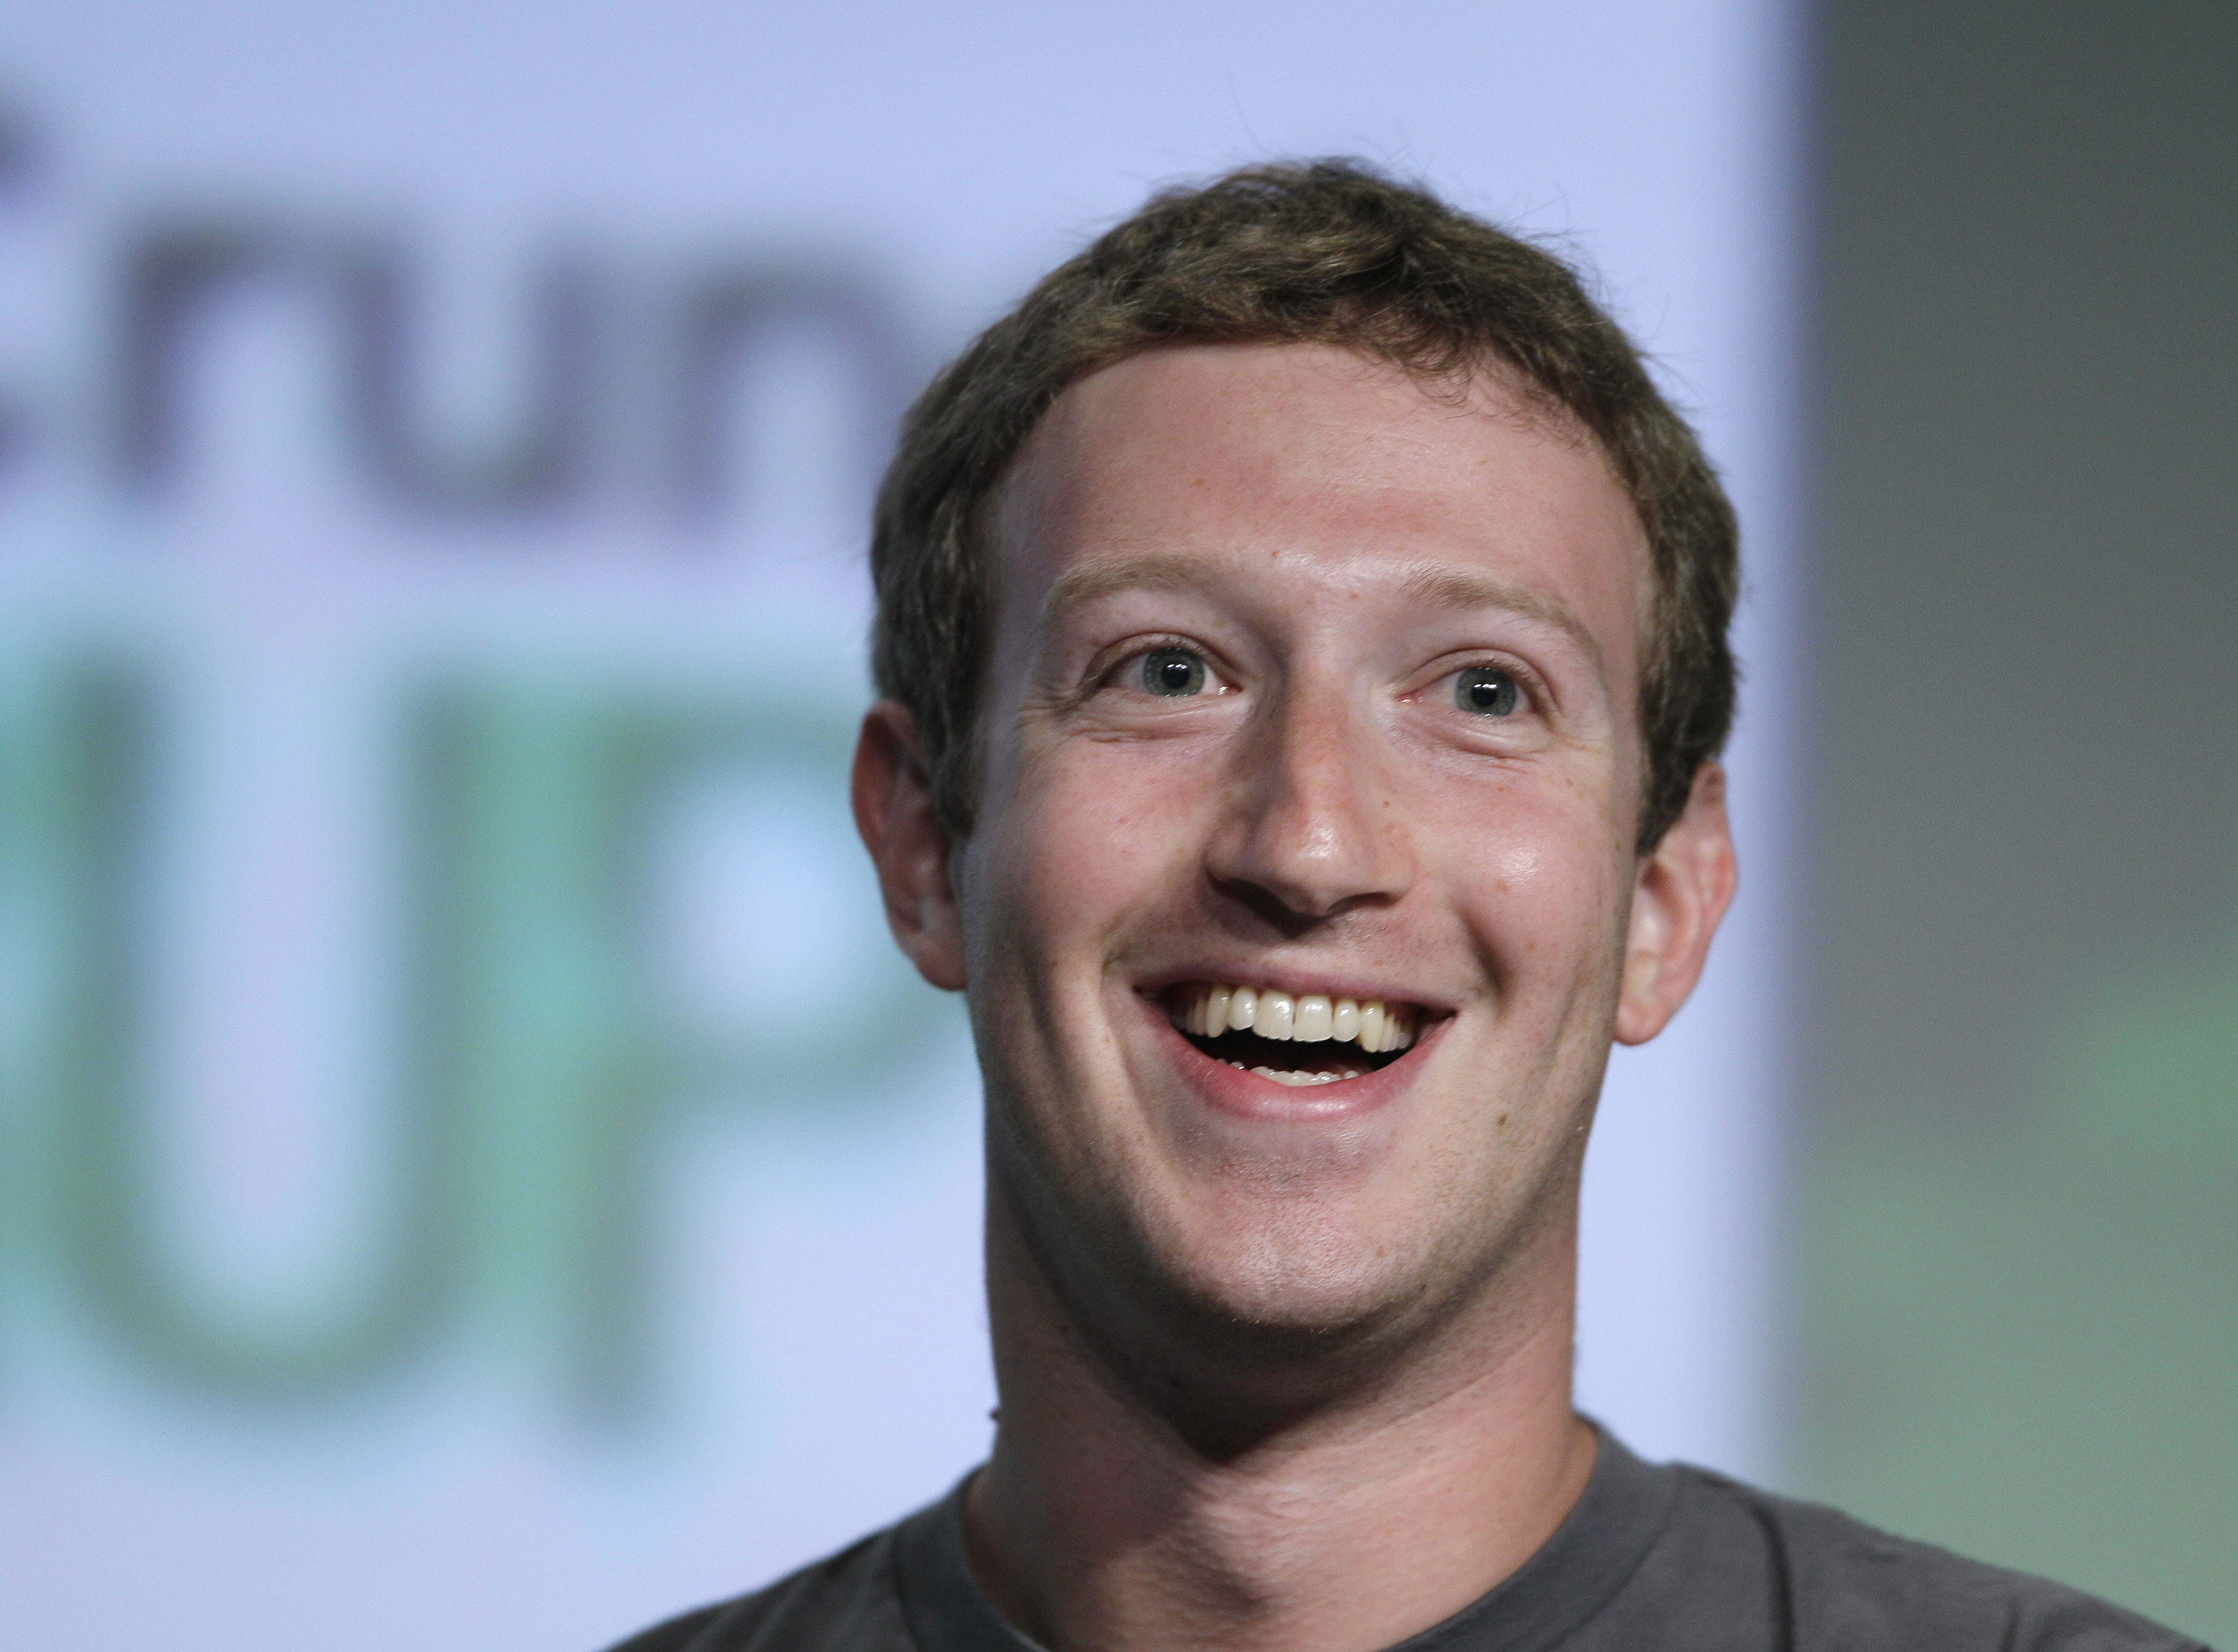 Facebook CEO Mark Zuckerberg speaks during a  fireside chat  at a conference organized by technology blog TechCrunch in San Francisco, Sept. 11, 2012